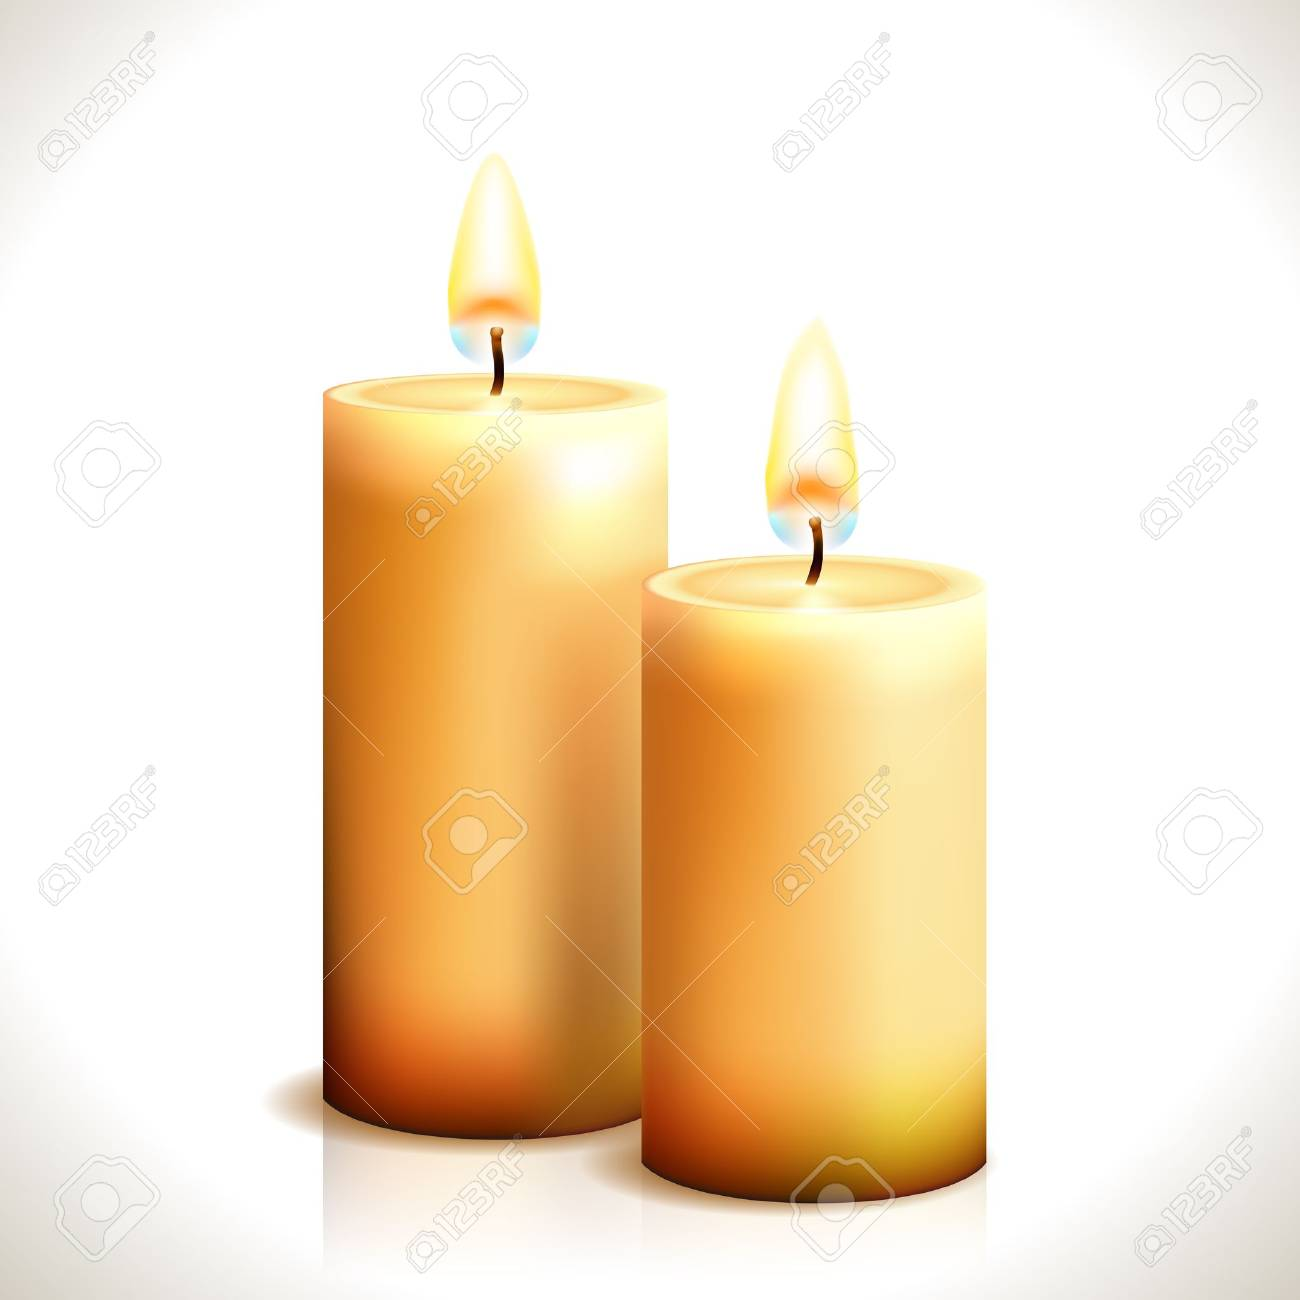 Burning Candles isolated on white  Illustration Stock Vector - 16112777